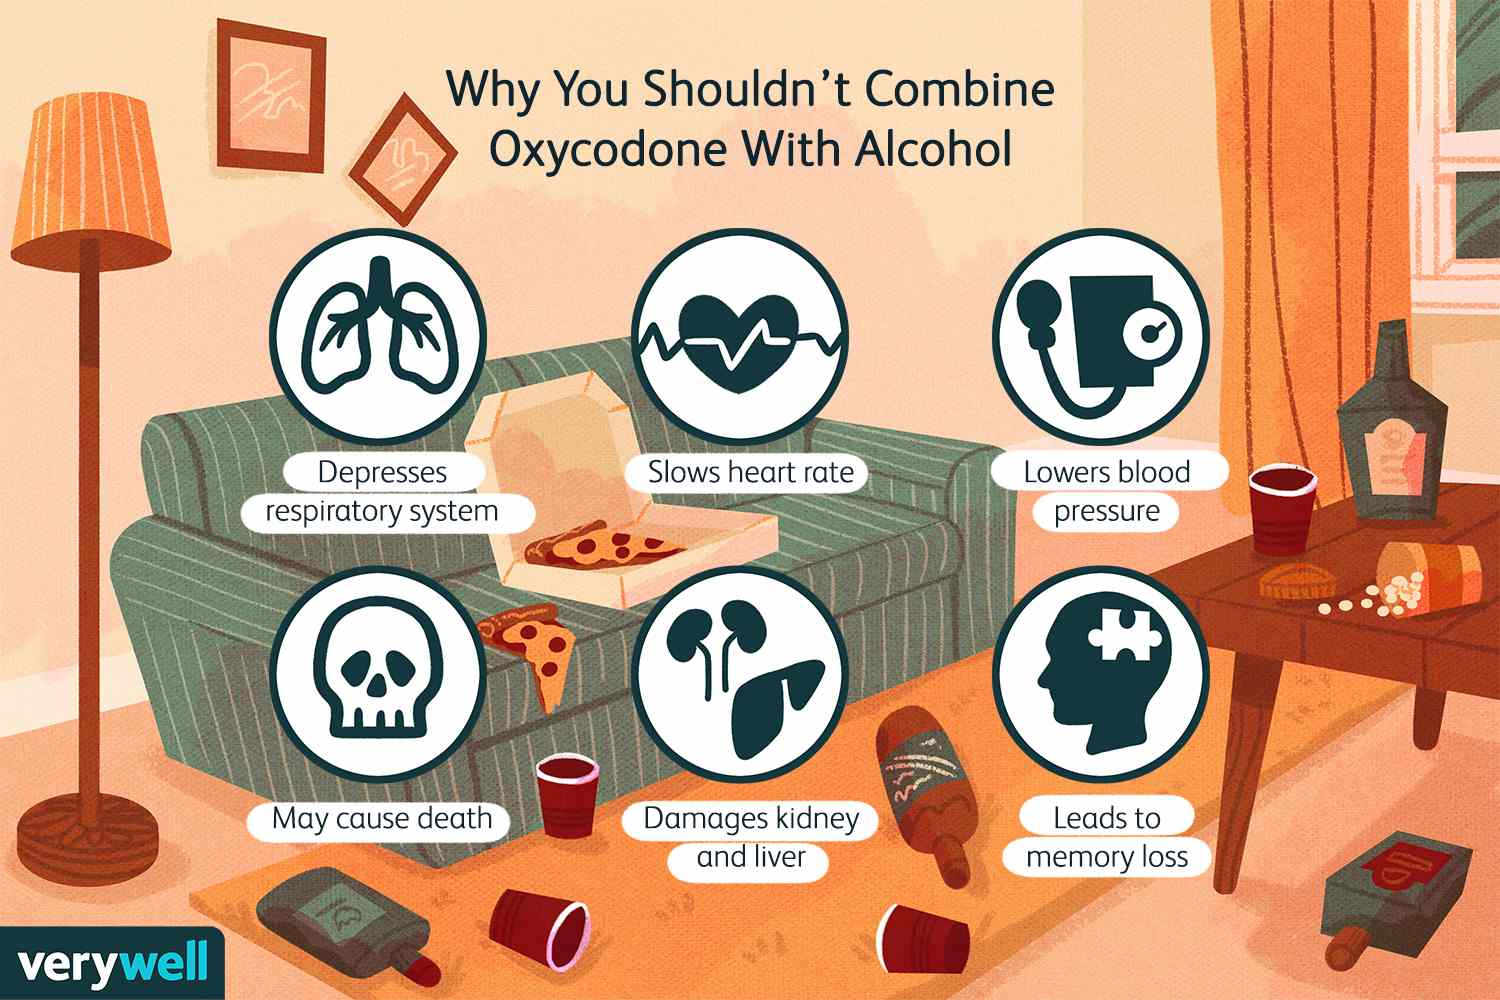 Why You Shouldn't Combine Oxycodone With Alcohol